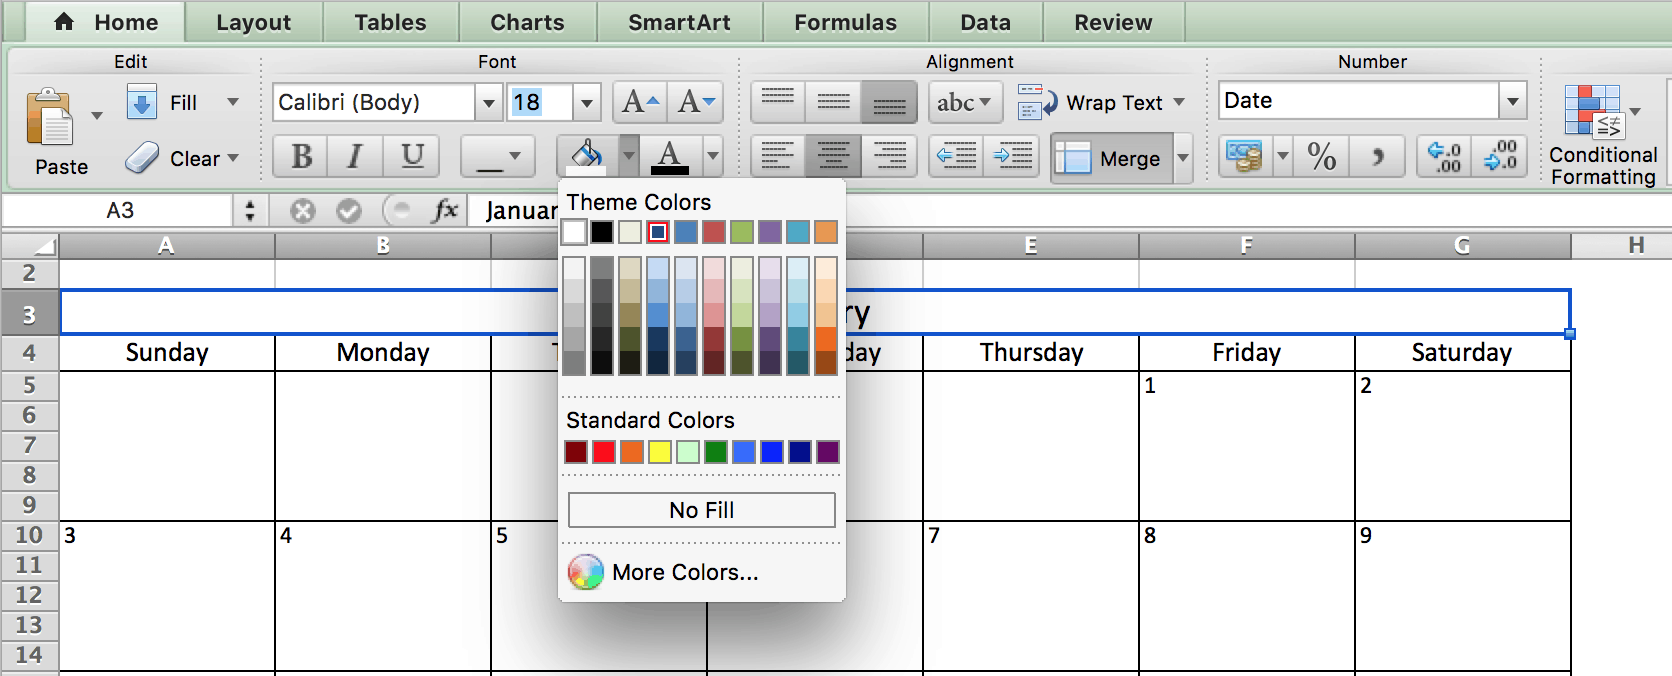 Ediblewildsus  Inspiring Make A  Calendar In Excel Includes Free Template With Gorgeous Choosing Colors  Calendar In Excel With Cool Task Tracking Template Excel Also Ssis Excel Destination In Addition Excel Vba Worksheet Name And Use Excel As A Database As Well As Microsoft Excel  Exercises Additionally What Is Autofilter In Excel From Smartsheetcom With Ediblewildsus  Gorgeous Make A  Calendar In Excel Includes Free Template With Cool Choosing Colors  Calendar In Excel And Inspiring Task Tracking Template Excel Also Ssis Excel Destination In Addition Excel Vba Worksheet Name From Smartsheetcom